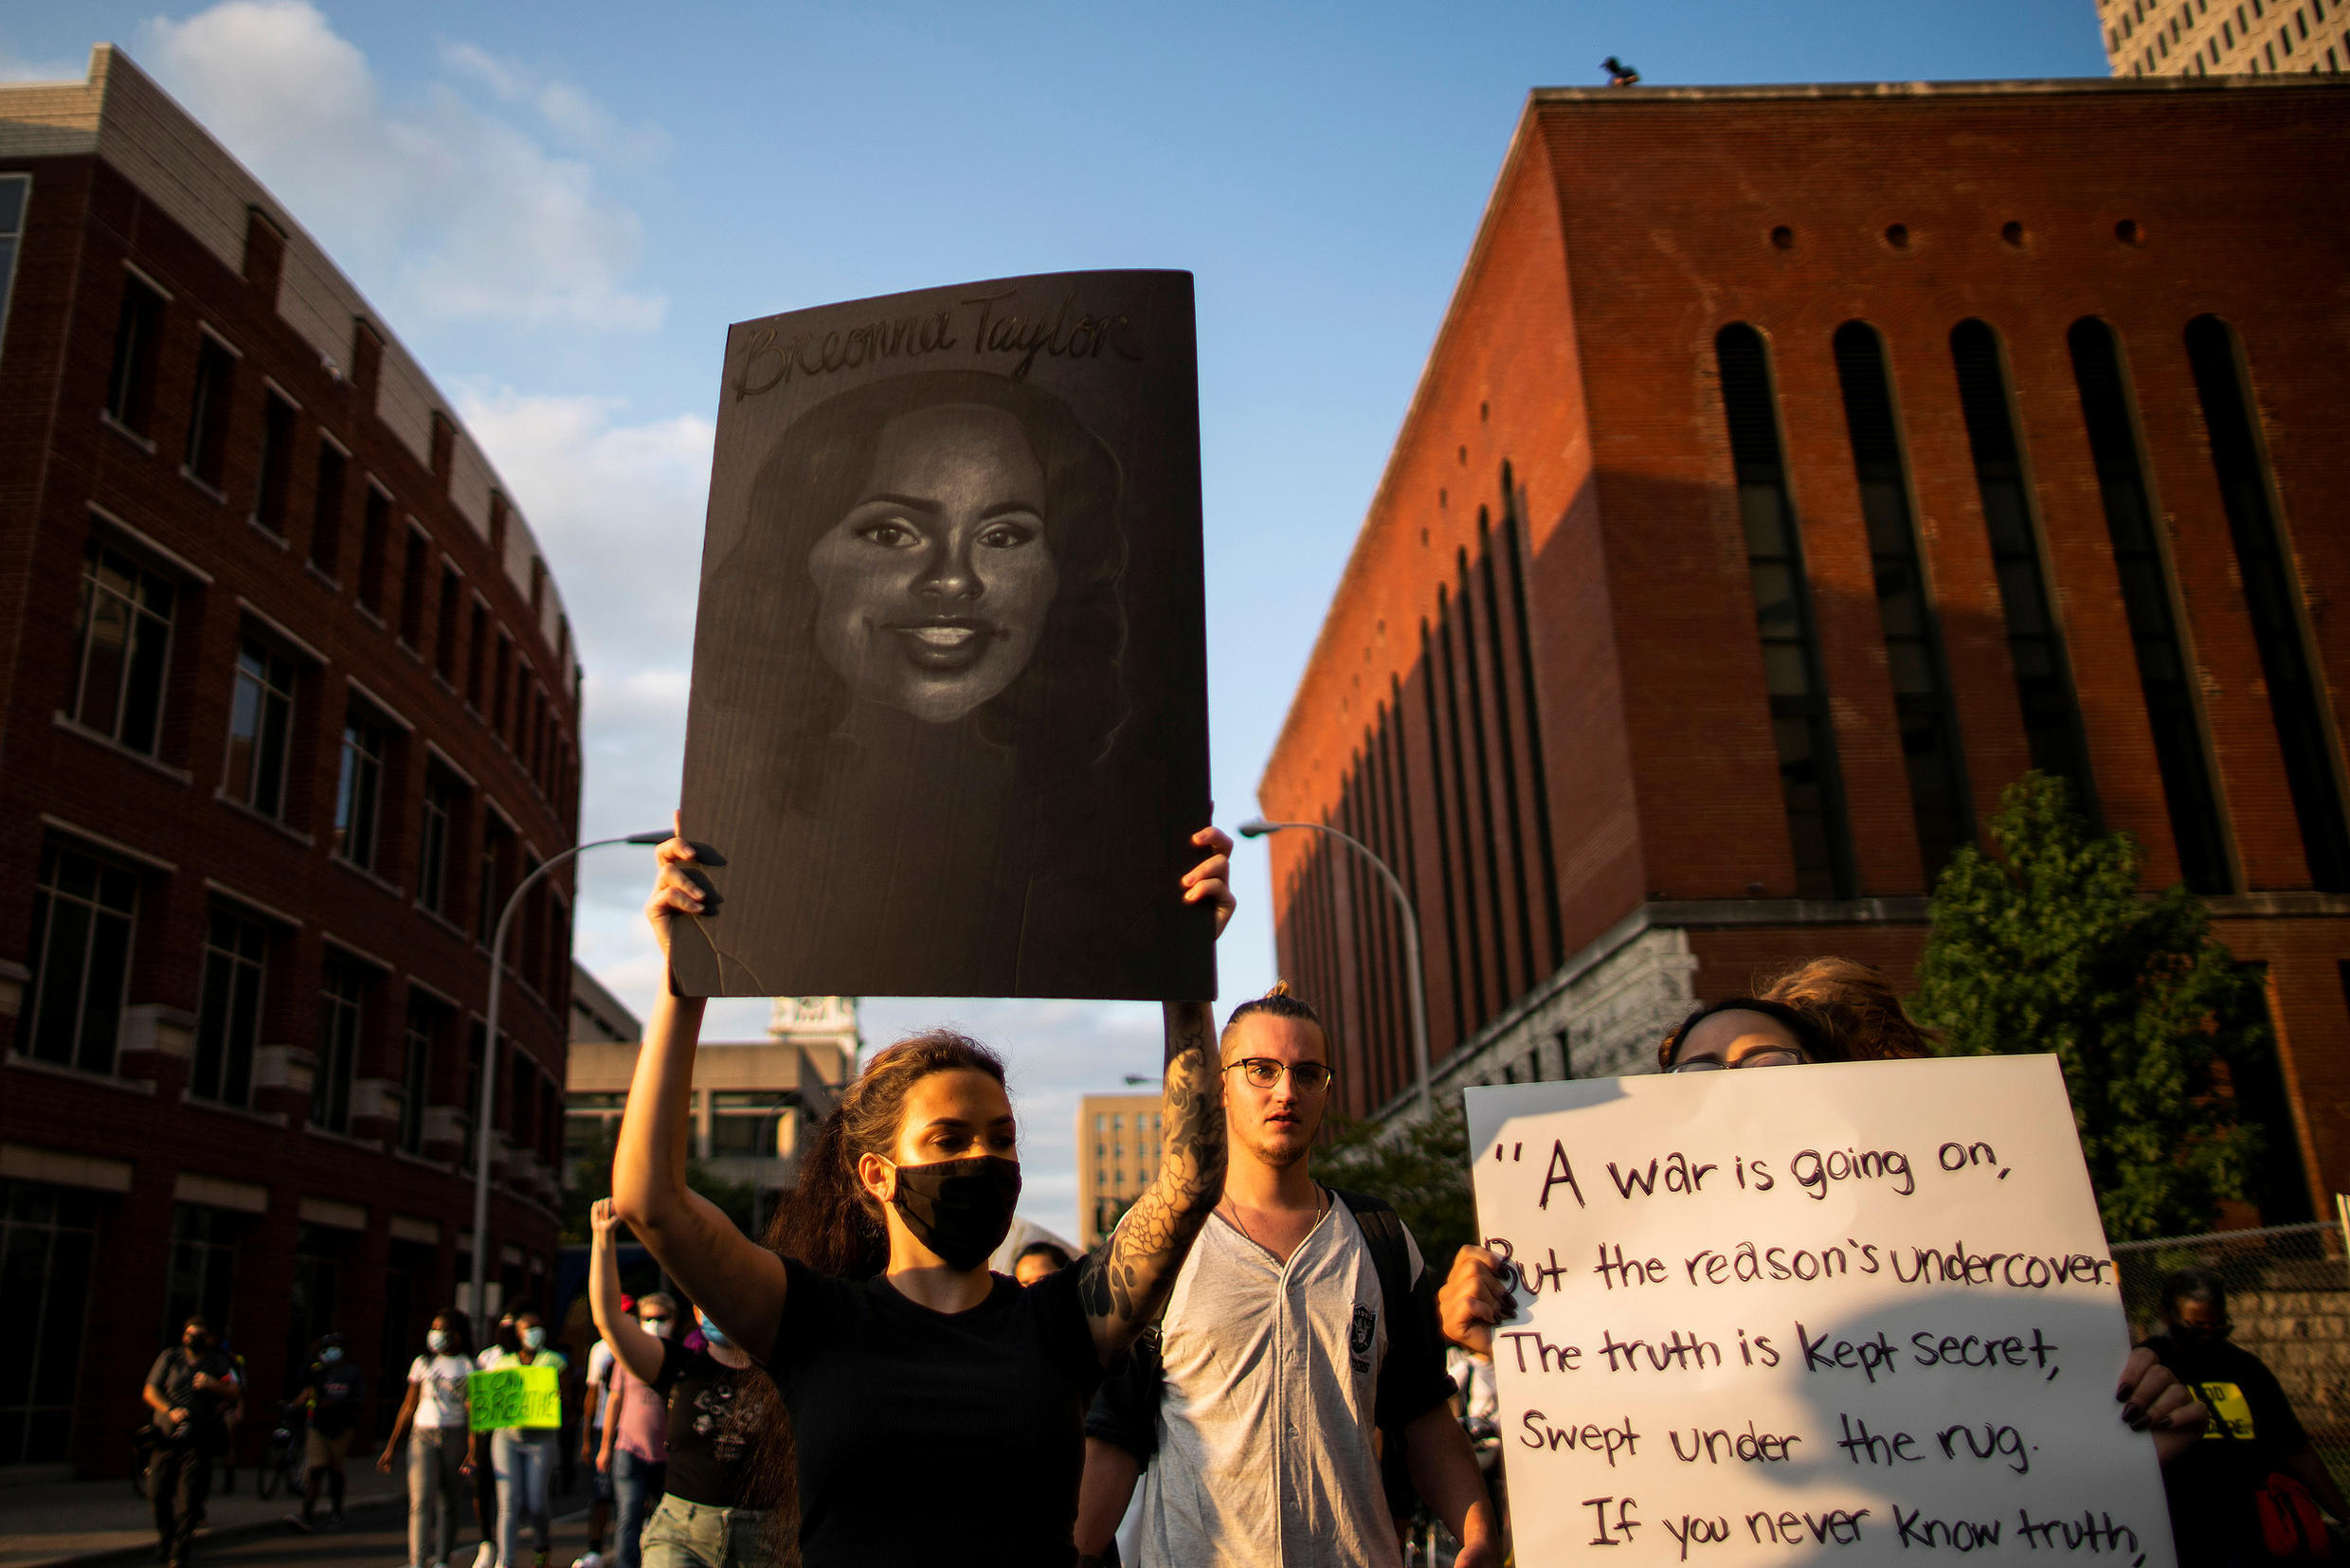 Protesters march during a peaceful protest after a grand jury decided not to bring homicide charges against police officers involved in the fatal shooting of Breonna Taylor, in Louisville, Kentucky September 26, 2020.